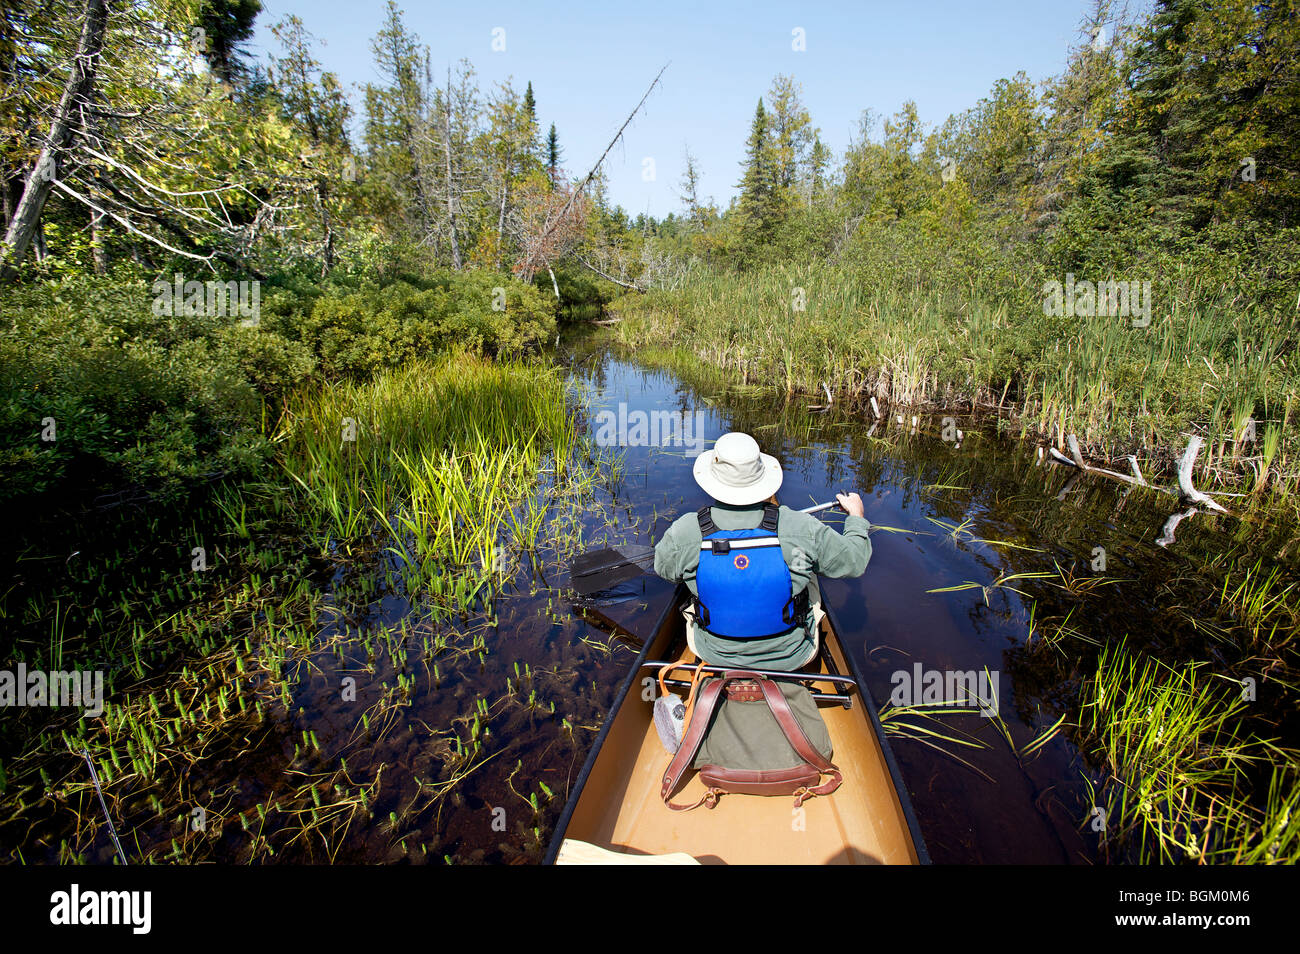 An elderly man canoes in the Superior National Forests, Boundary Waters Canoe area during a nice September day. - Stock Image